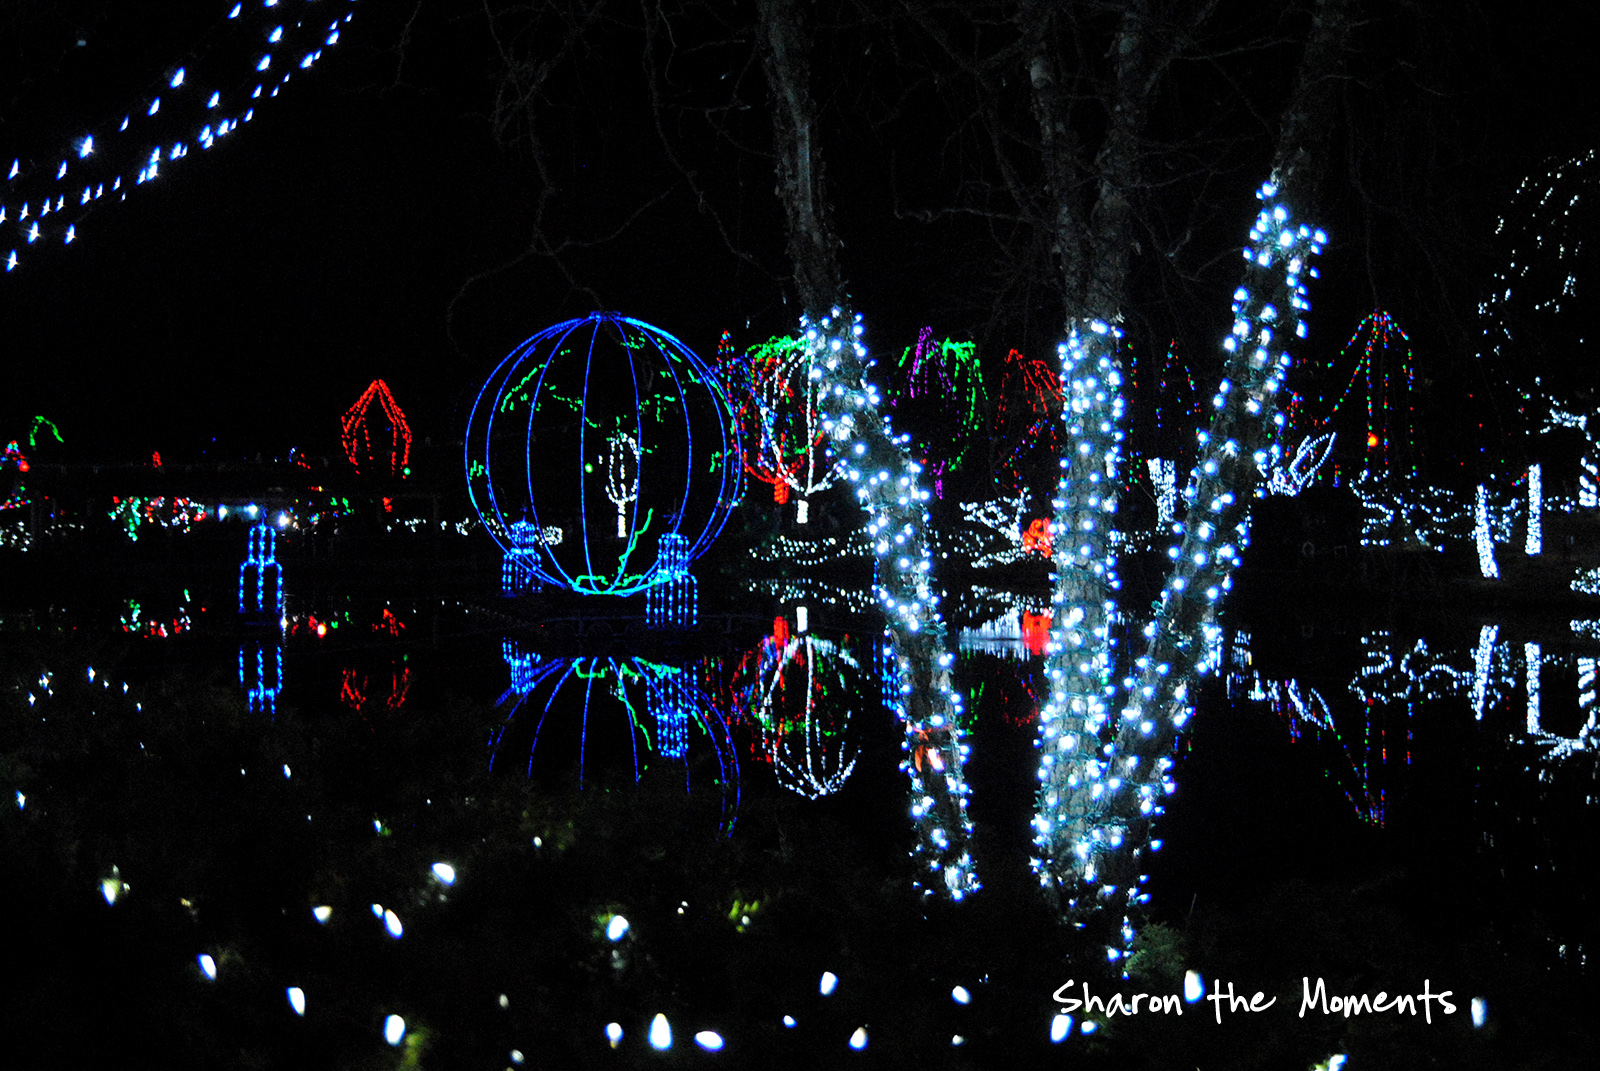 Family Fun at the Columbus Zoo for Winter Wildlights\Sharon the Moments blog